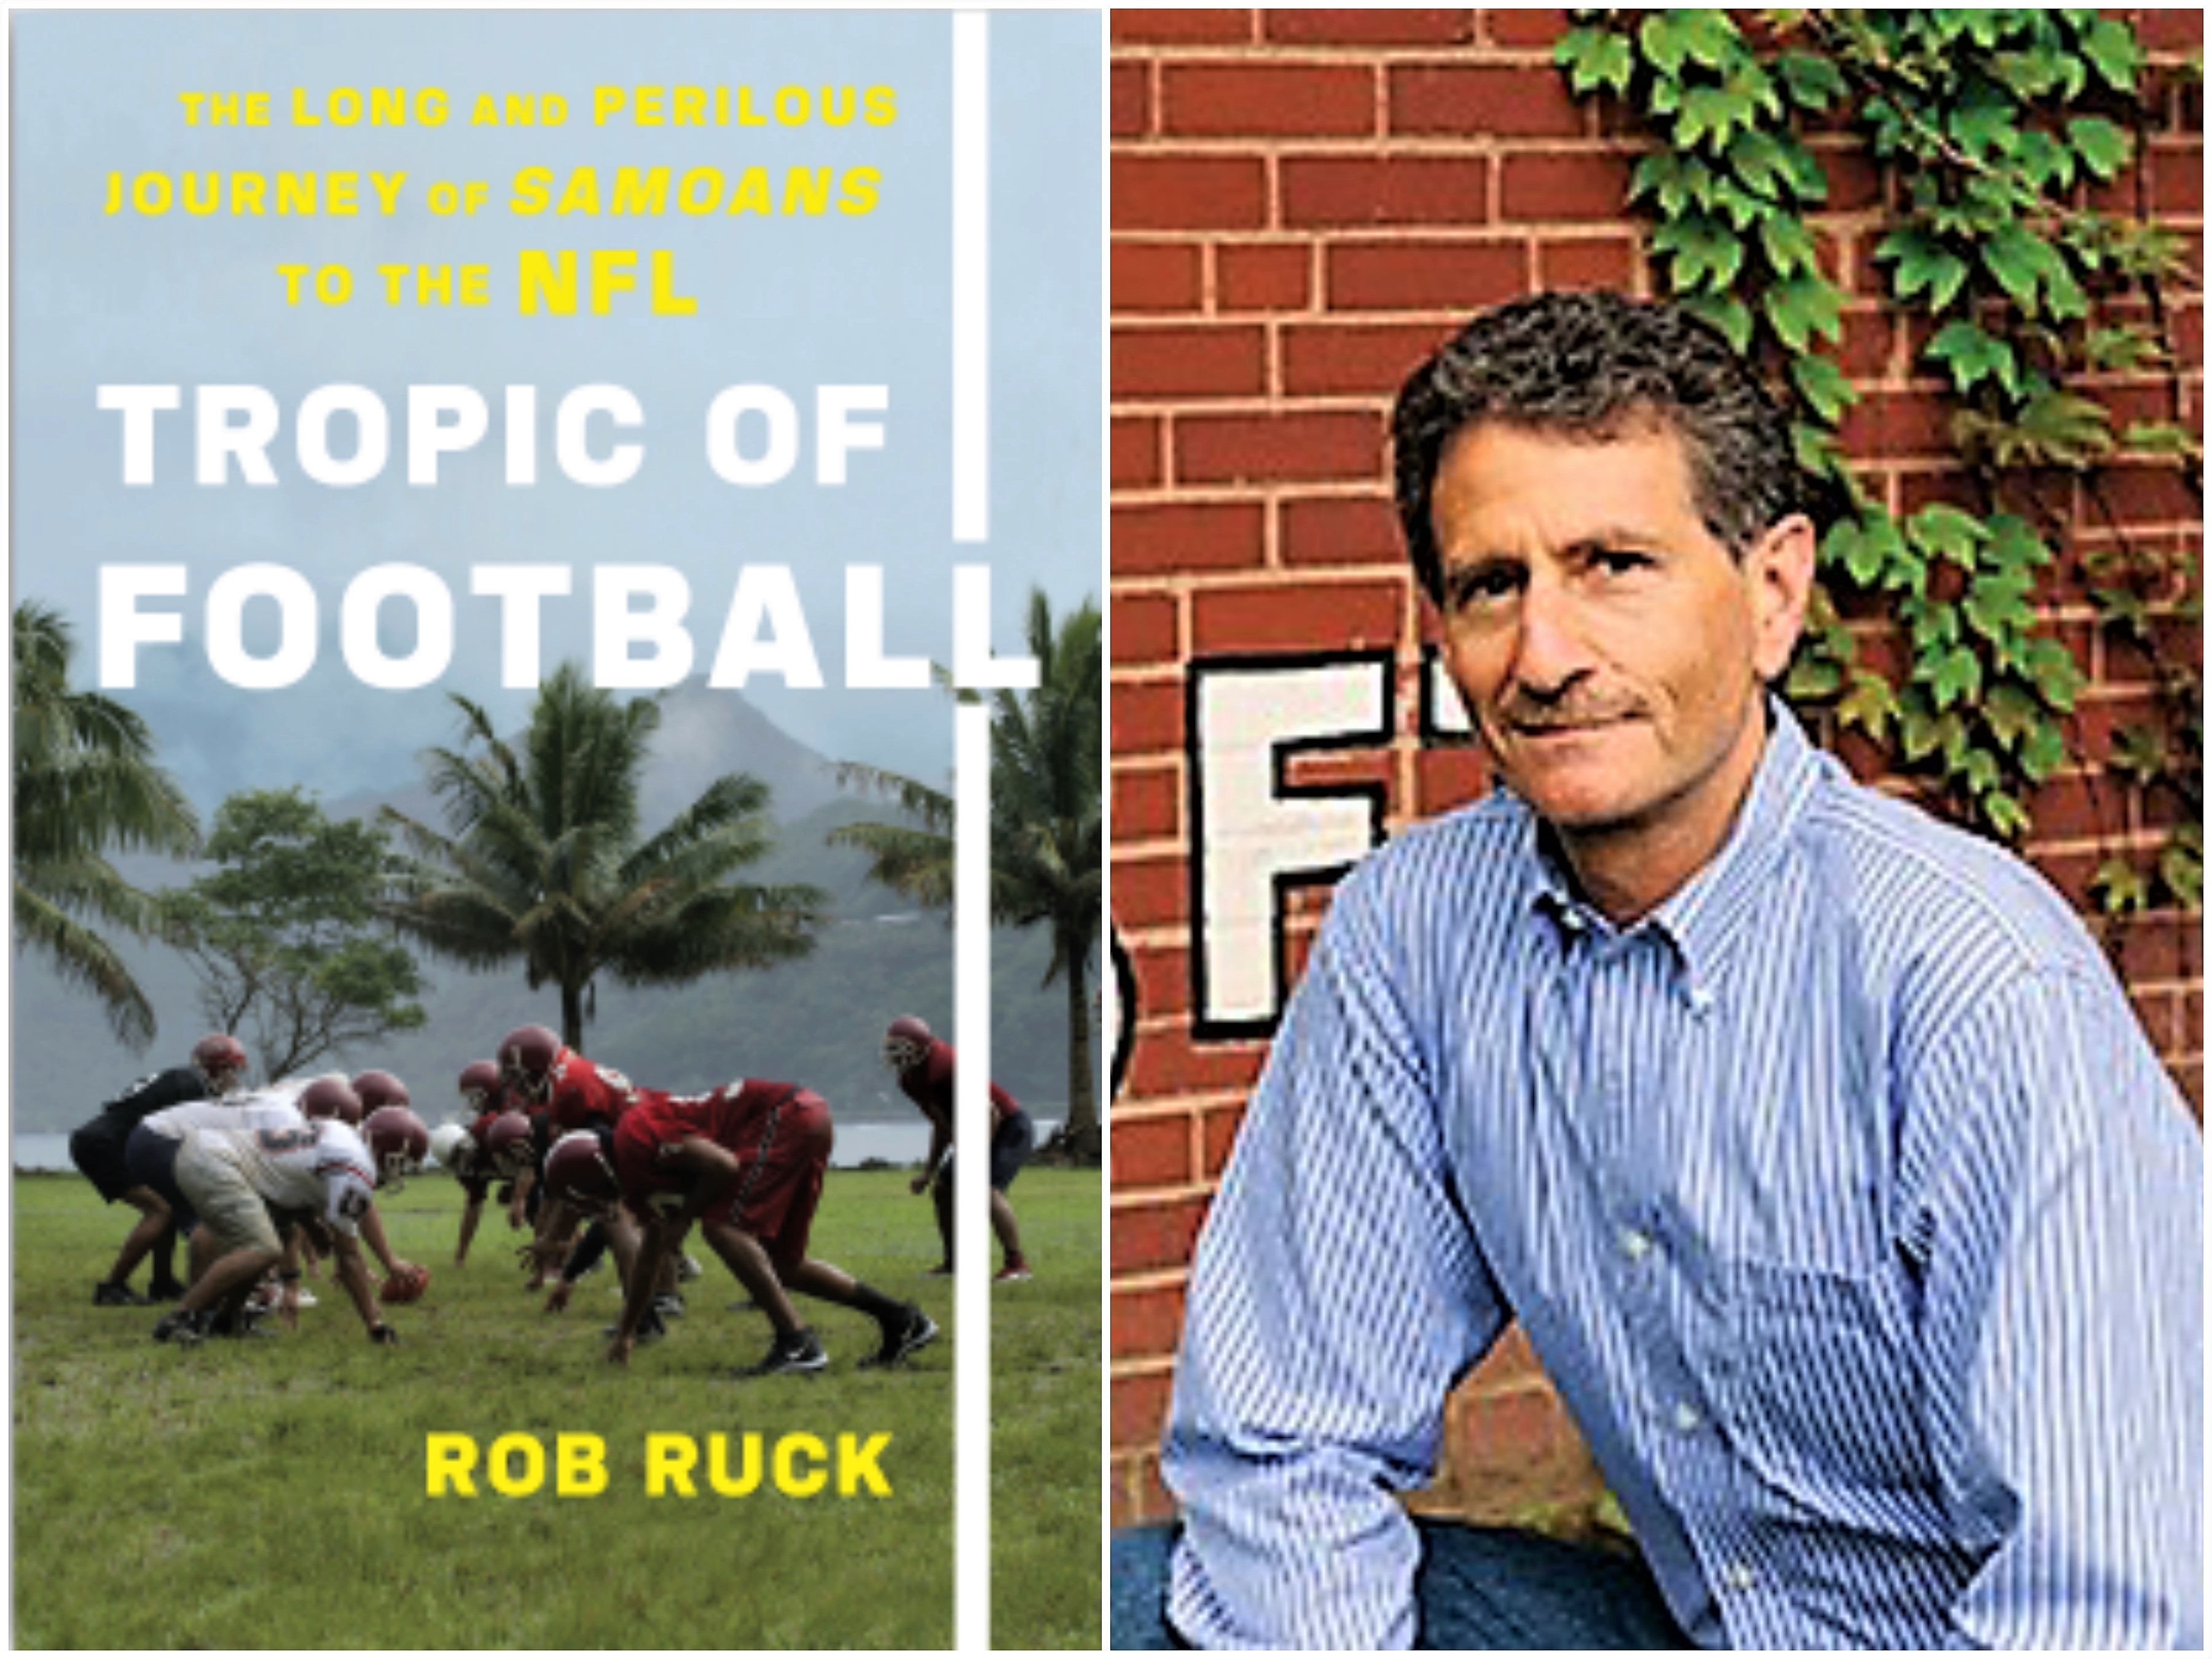 Photo collage showing cover of Tropic of Football book and its author, Dr. Rob Ruck